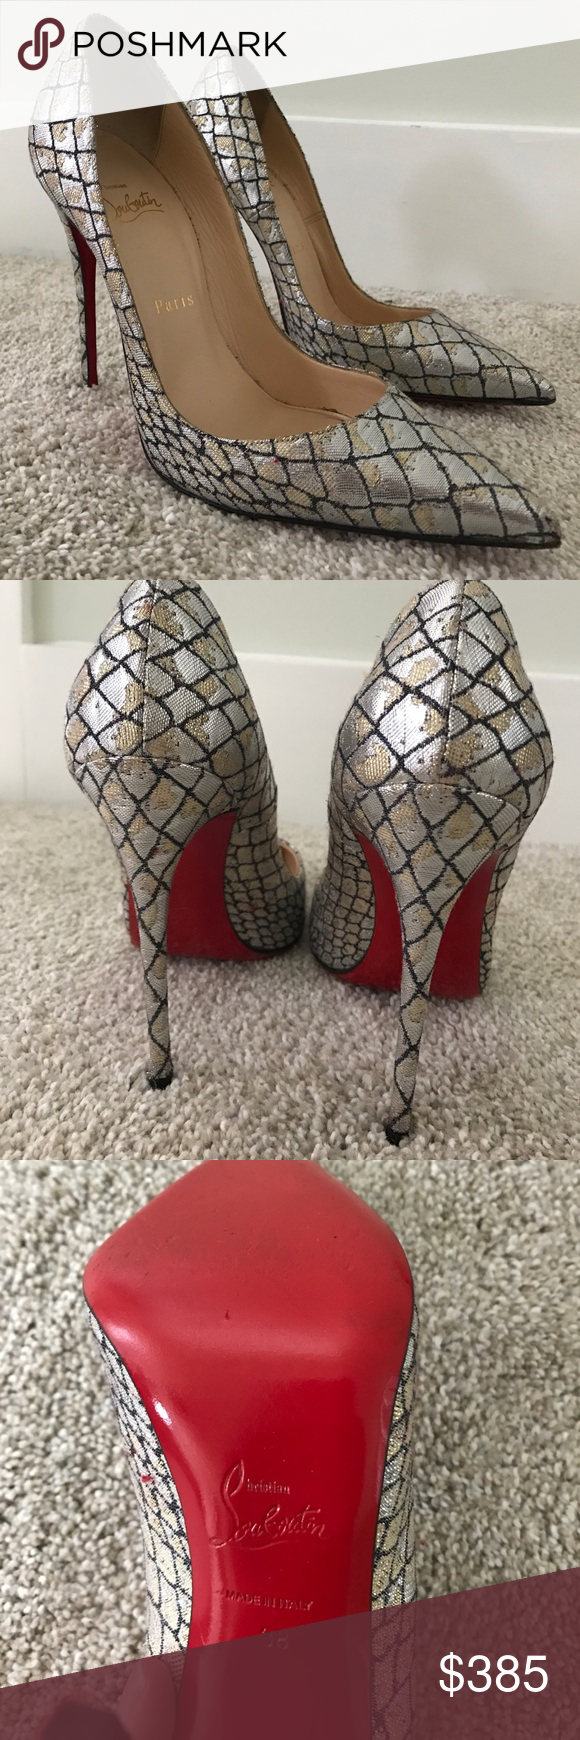 "Christian Louboutin Heels Beautiful Woven Heels - Re-Posh.  These are so unique but they are too small for me.  Previous posher said ""professionally re-painted soles"".  Snake embossed point toe pump.  4.5 inch heel height.  Includes dust bag.  Great condition! Christian Louboutin Shoes Heels"